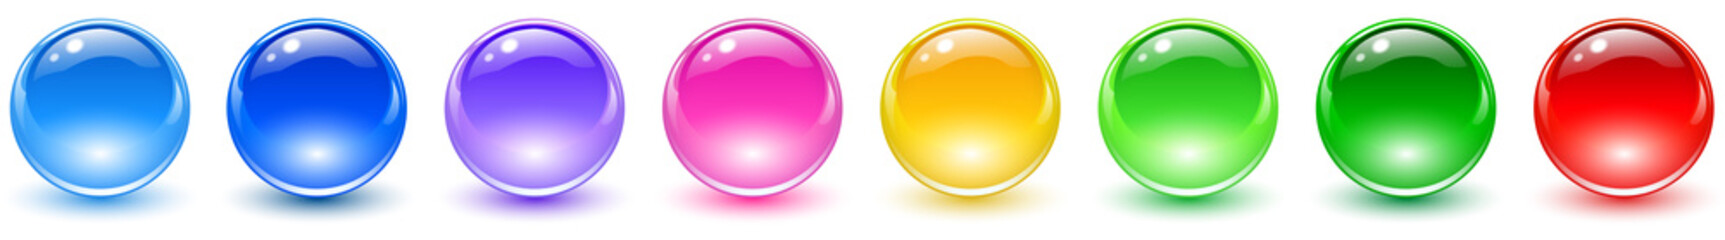 Obraz Set of colored spheres, shiny and glossy 3D colorful glass balls collection, multicolored vector illustration. - fototapety do salonu